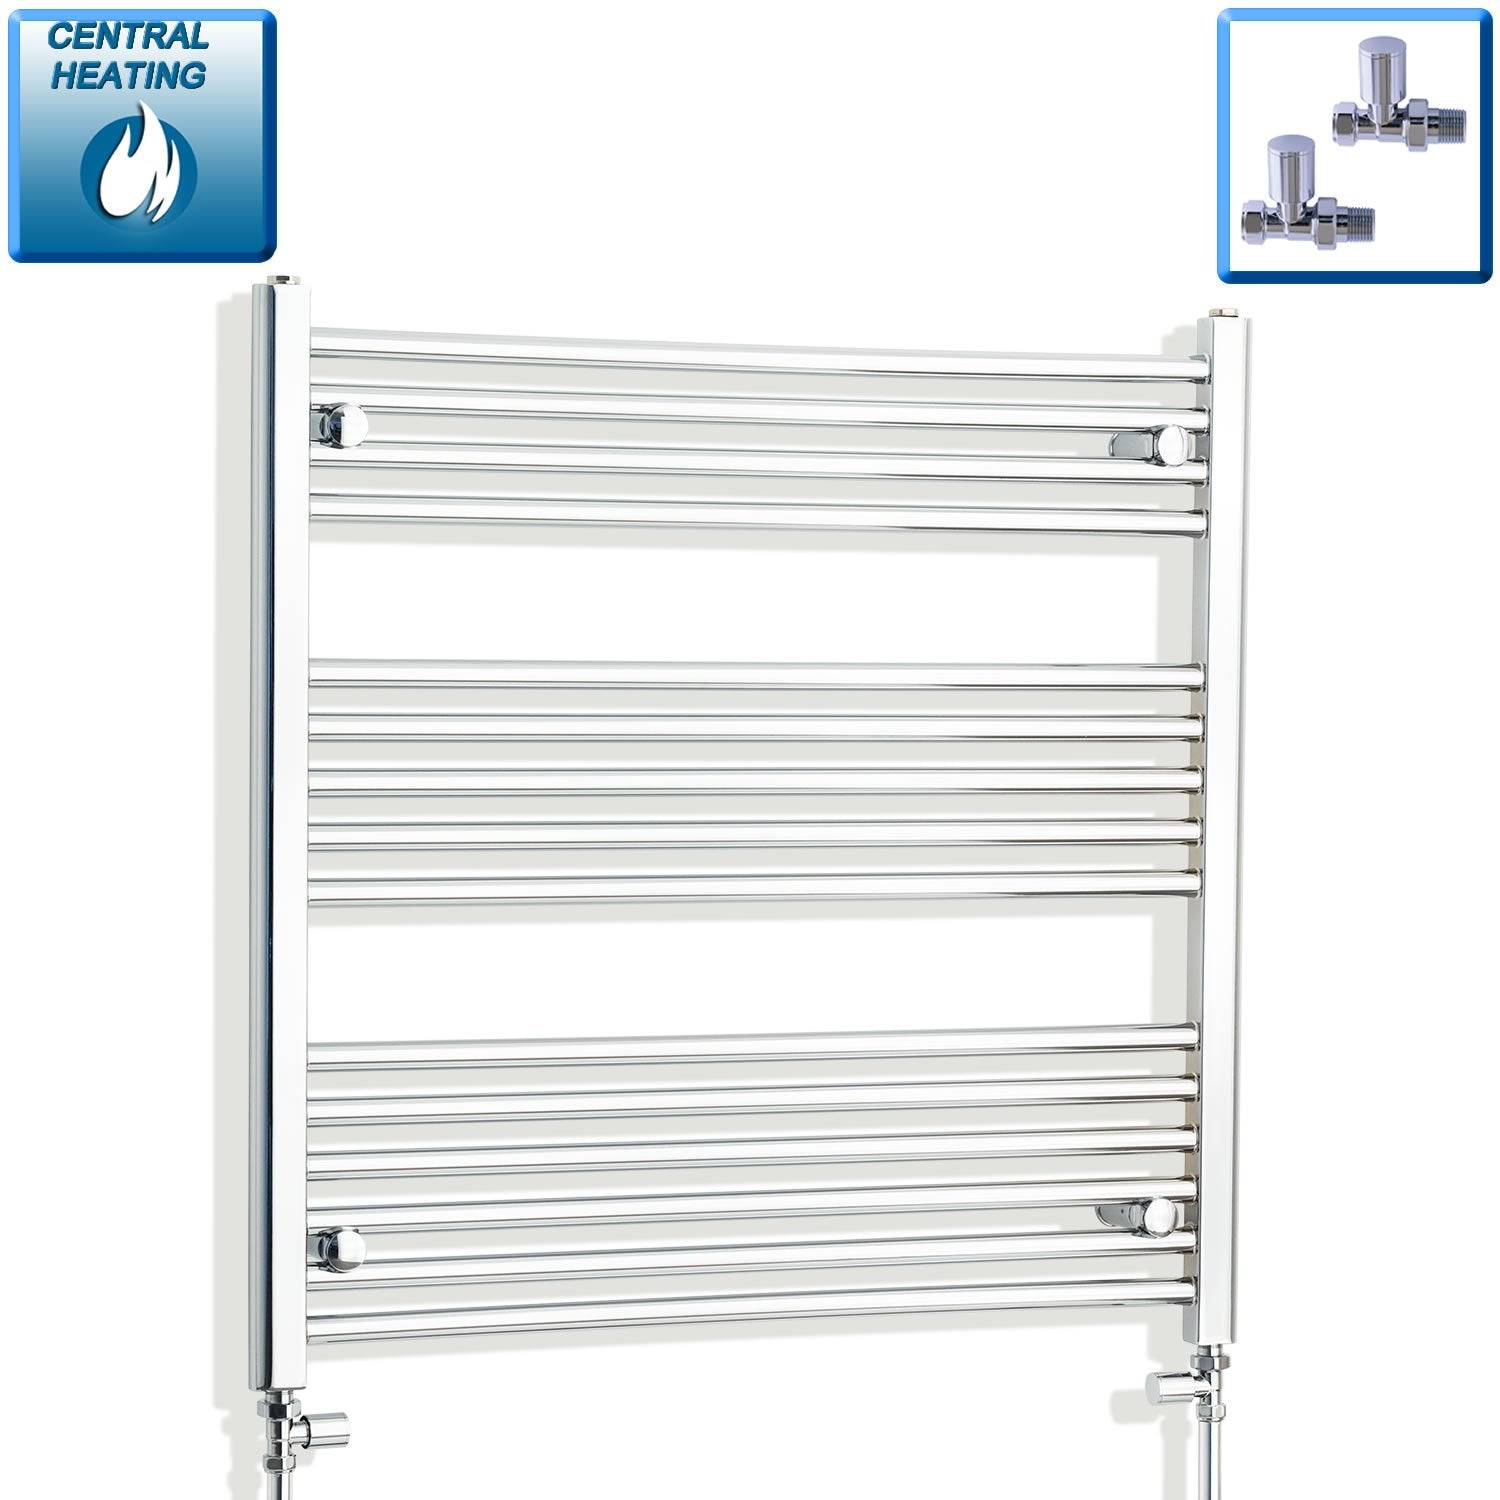 750mm Wide 800mm High Curved Chrome Heated Towel Rail Radiator HTR,With Straight Valve